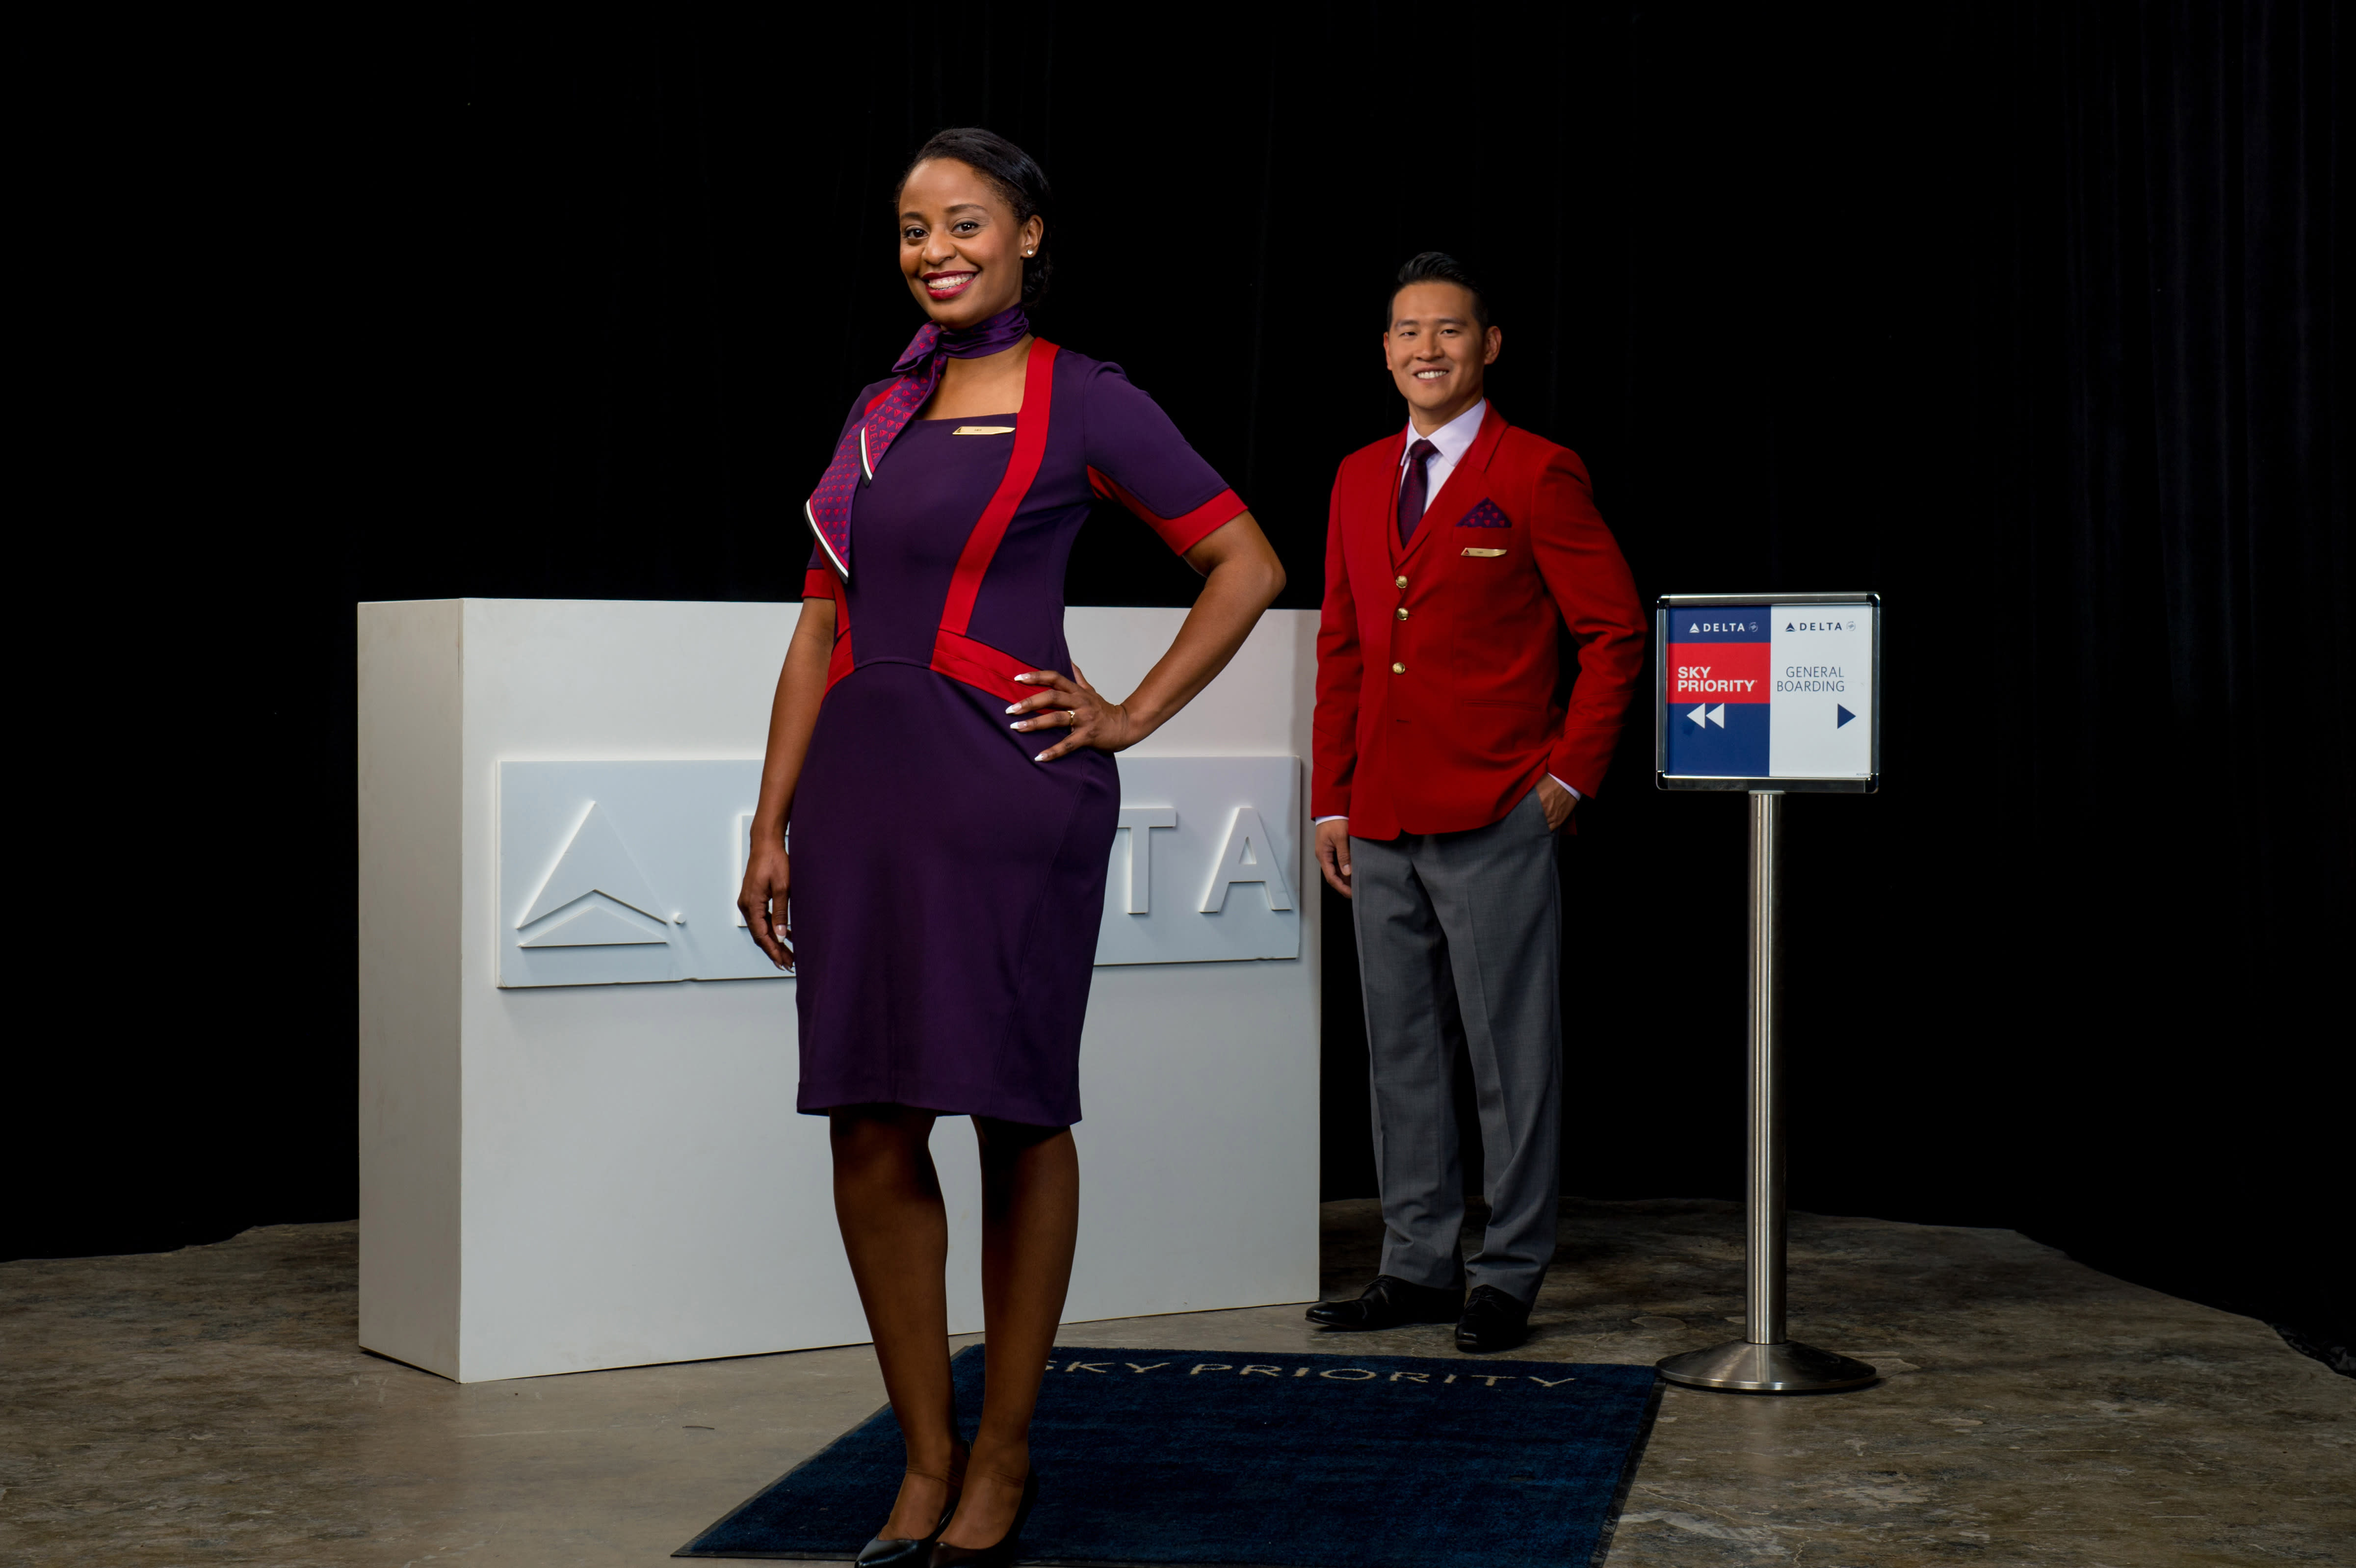 Watch Deltas new uniforms are giving some flight attendants rashes video